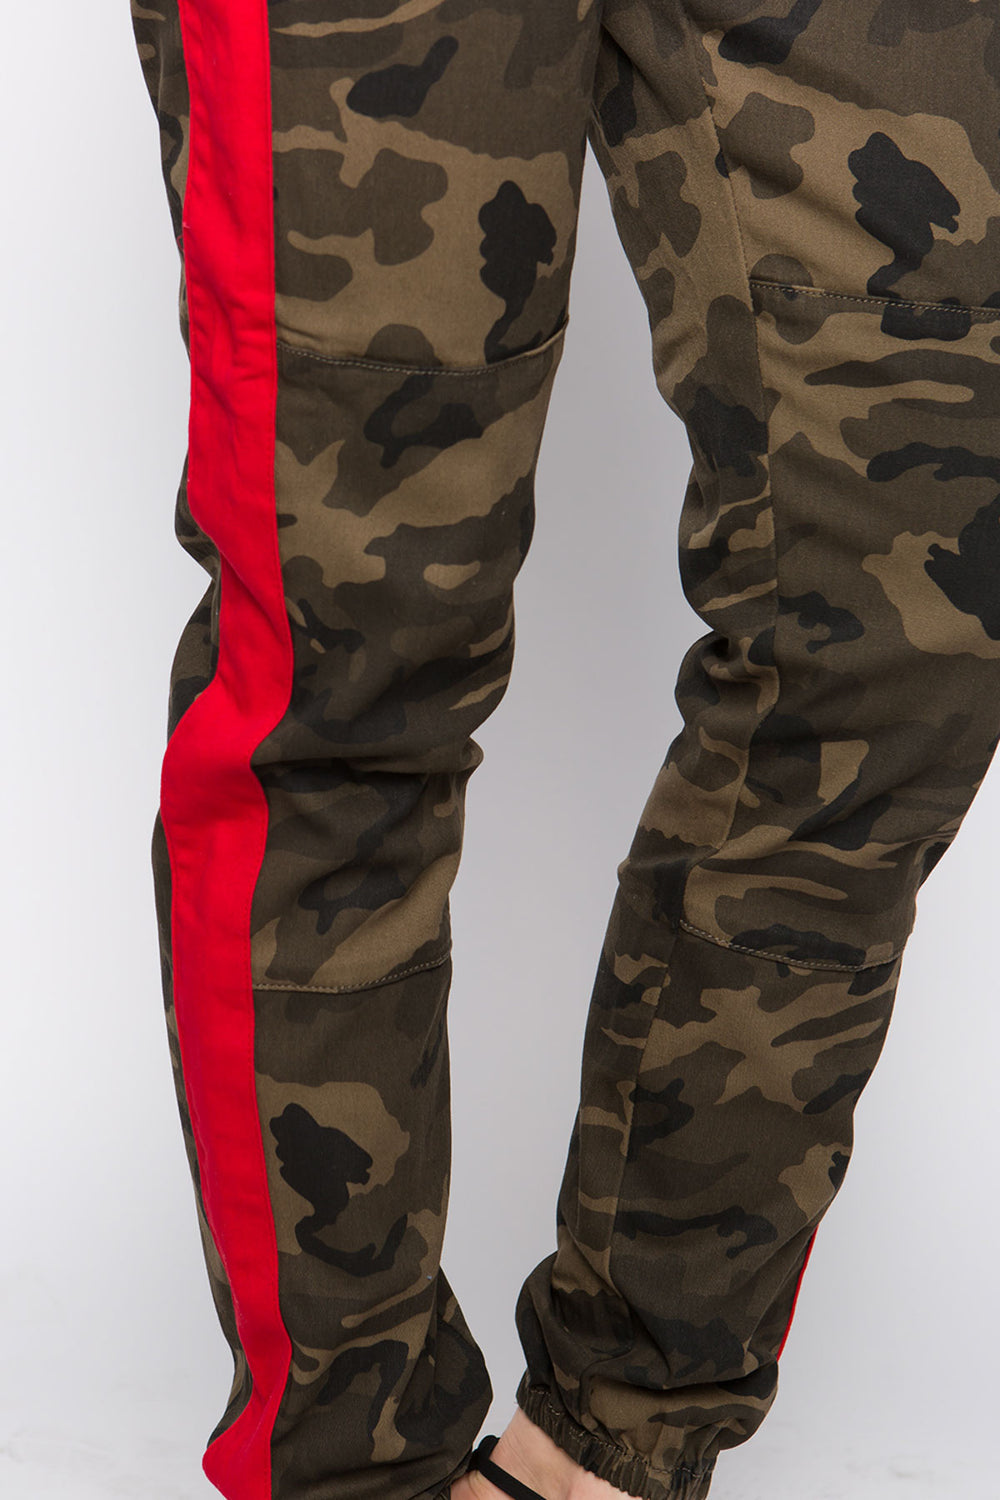 High Rise Camo Color Print Jogger Pants With Belt  - Red  l  LoveModa